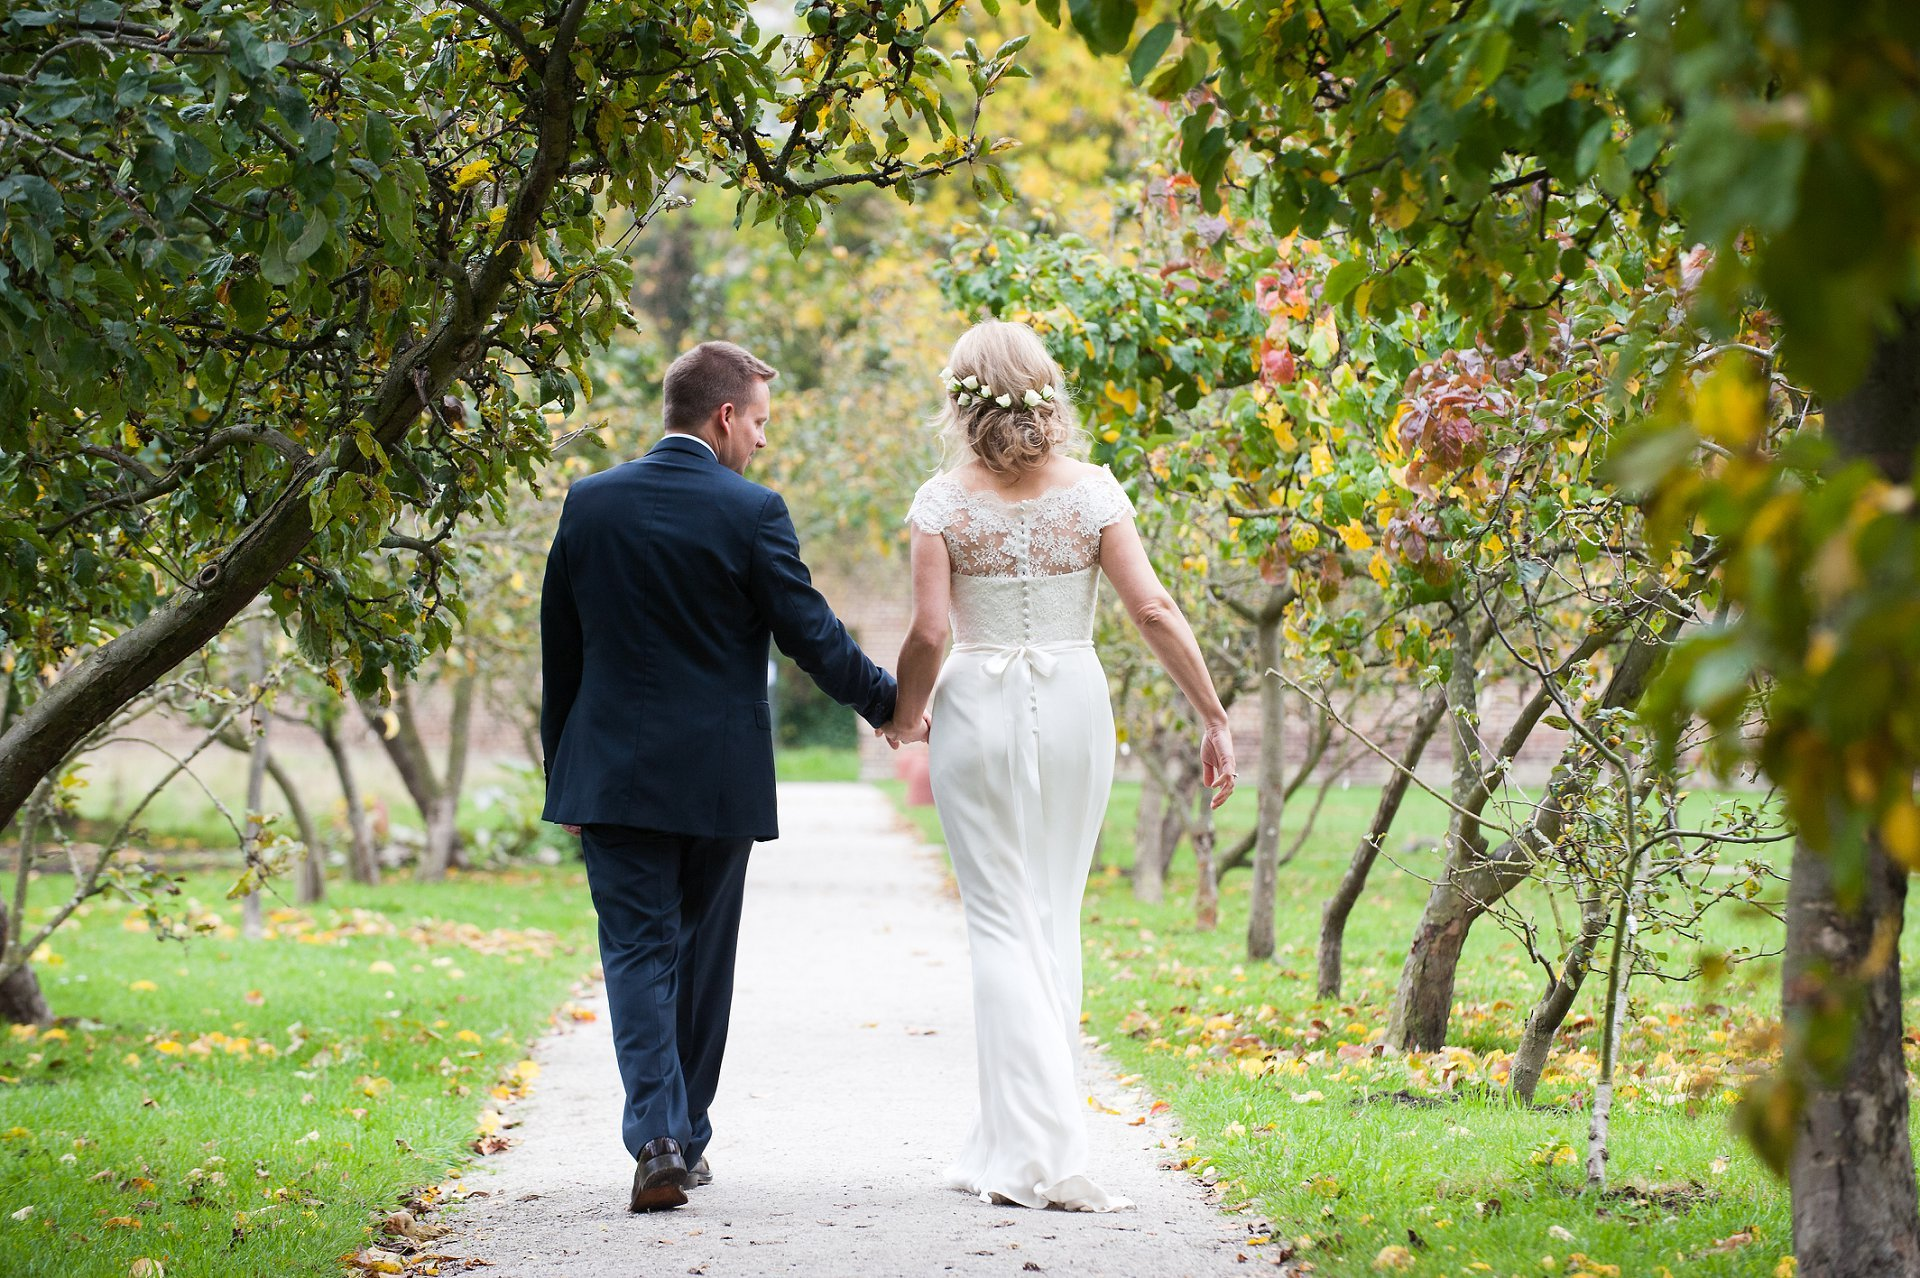 The ancient walled garden at Fulham Palace is a wonderful backdrop to wedding photographs of the happy couple